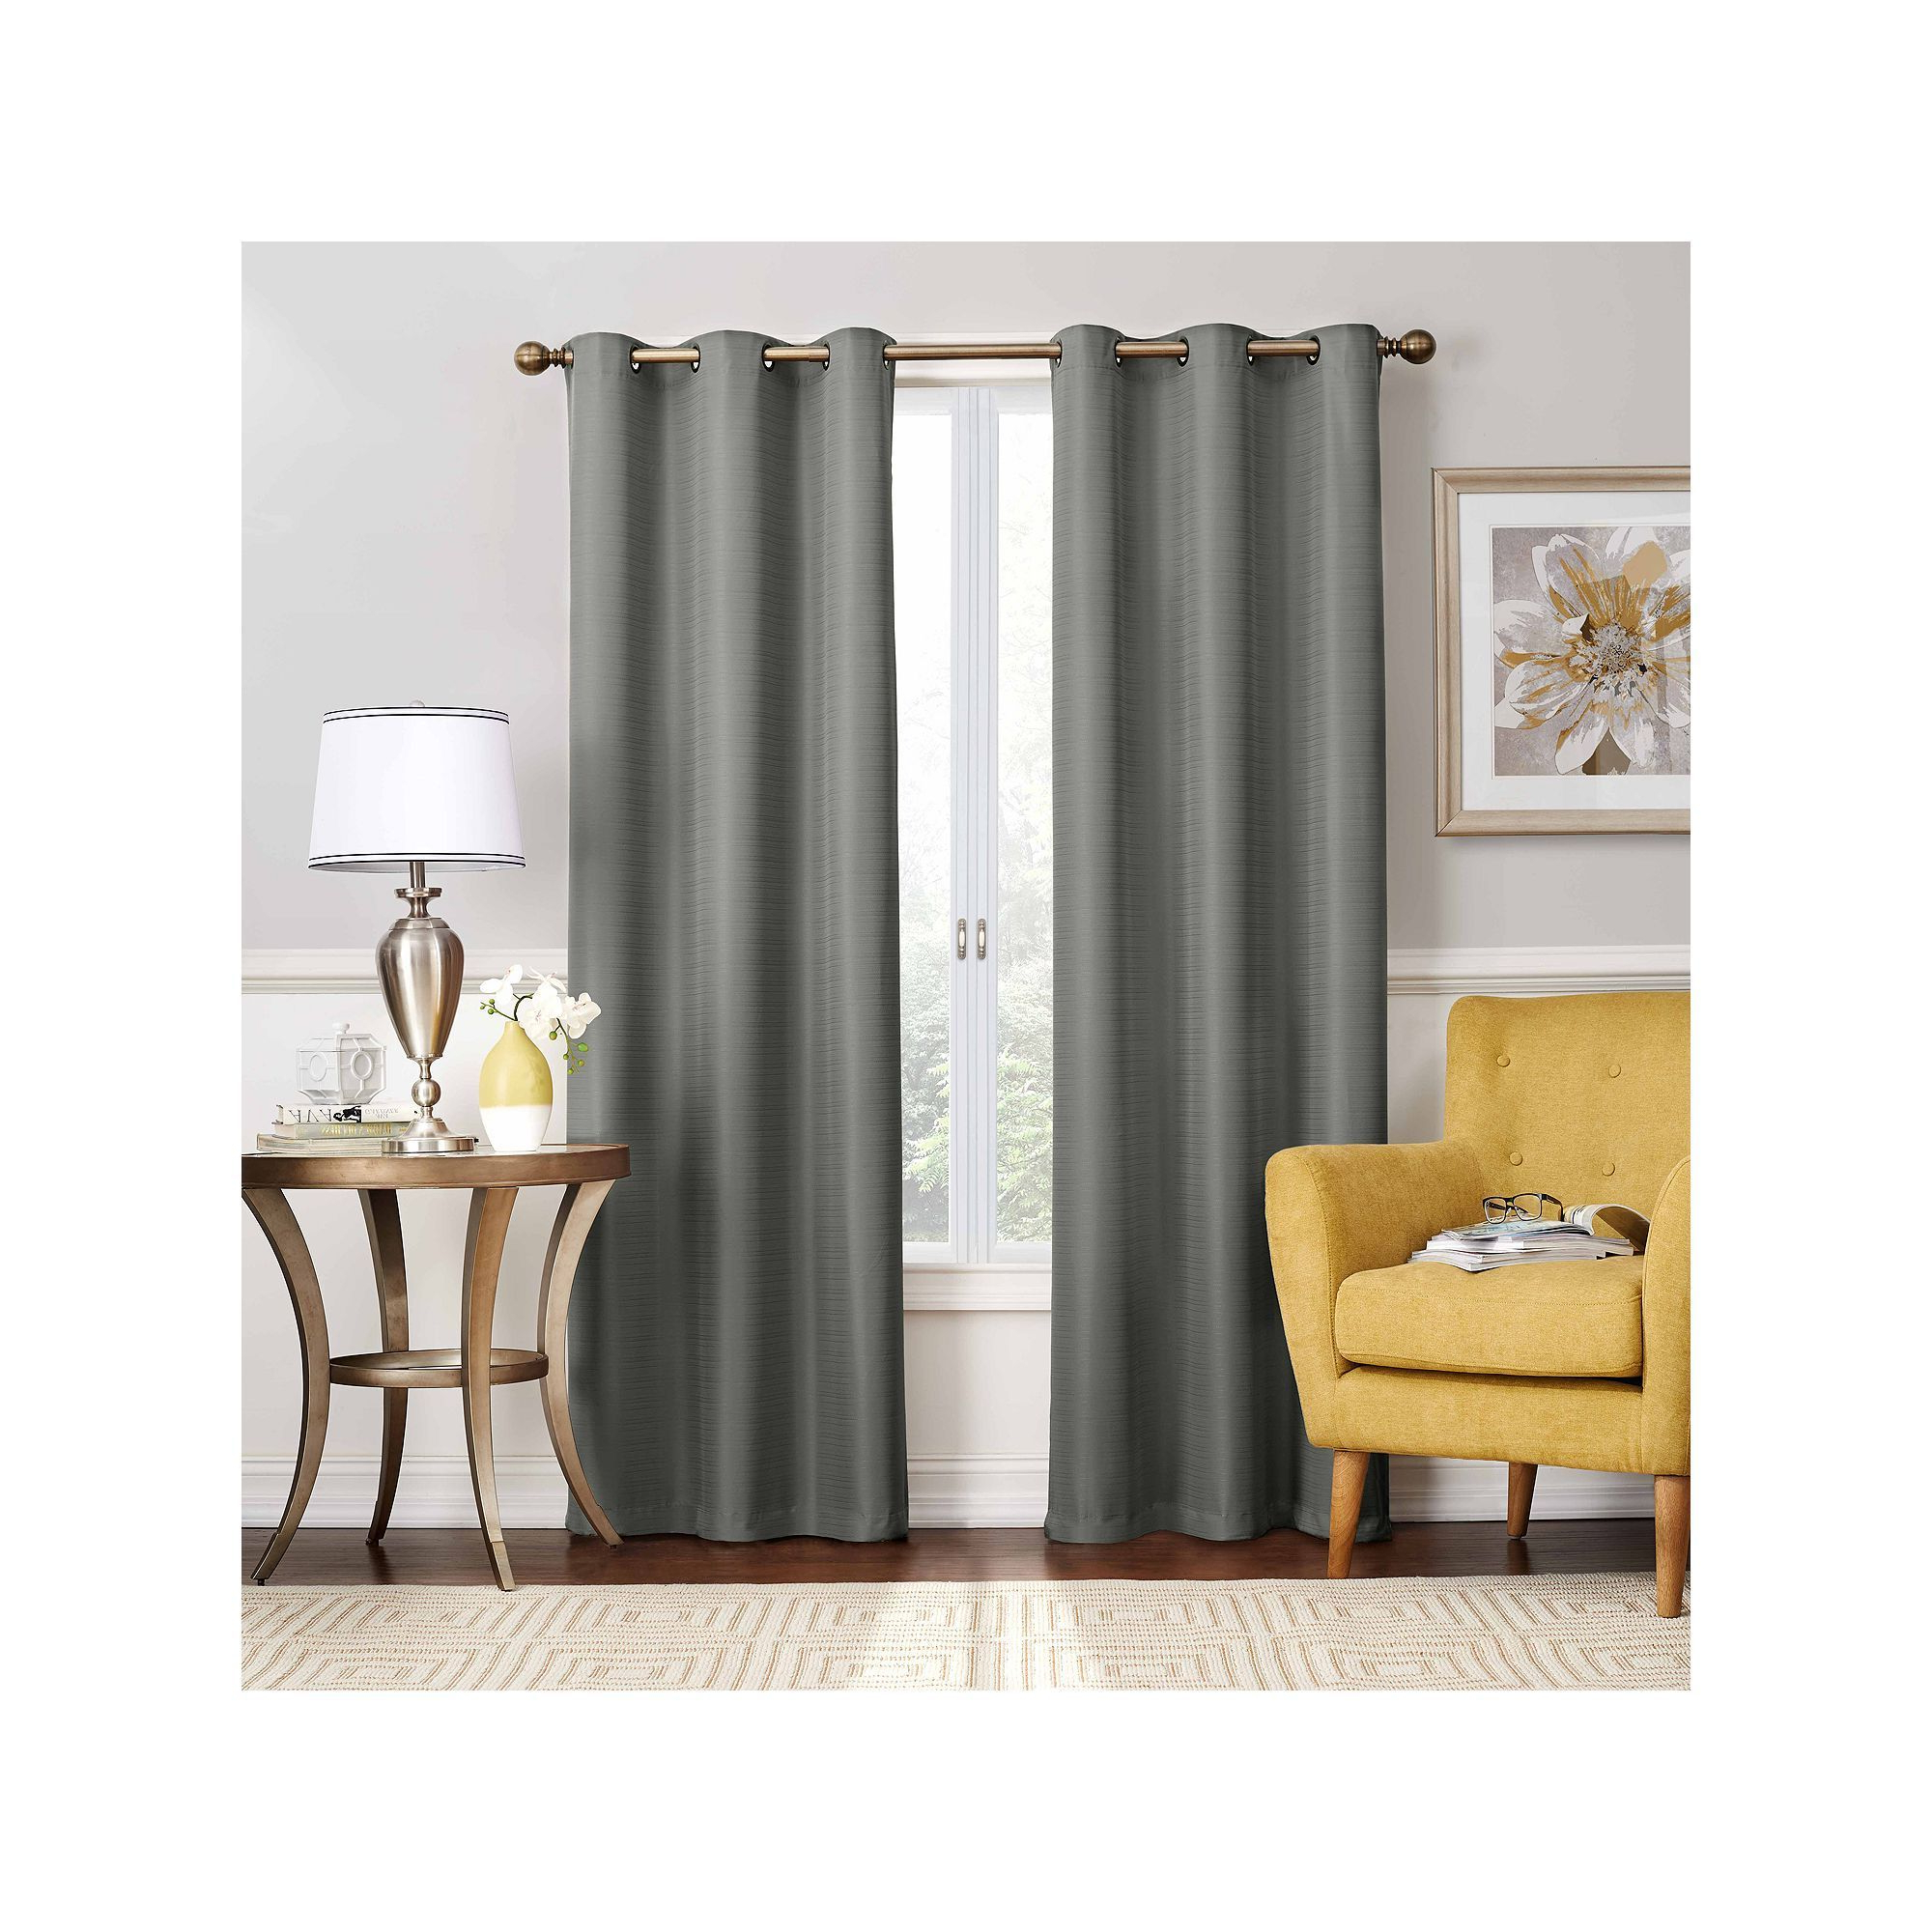 Latest Eclipse Nikki Blackout Window Curtain, Grey, 40x84 With Regard To Thermaback Blackout Window Curtains (View 15 of 20)